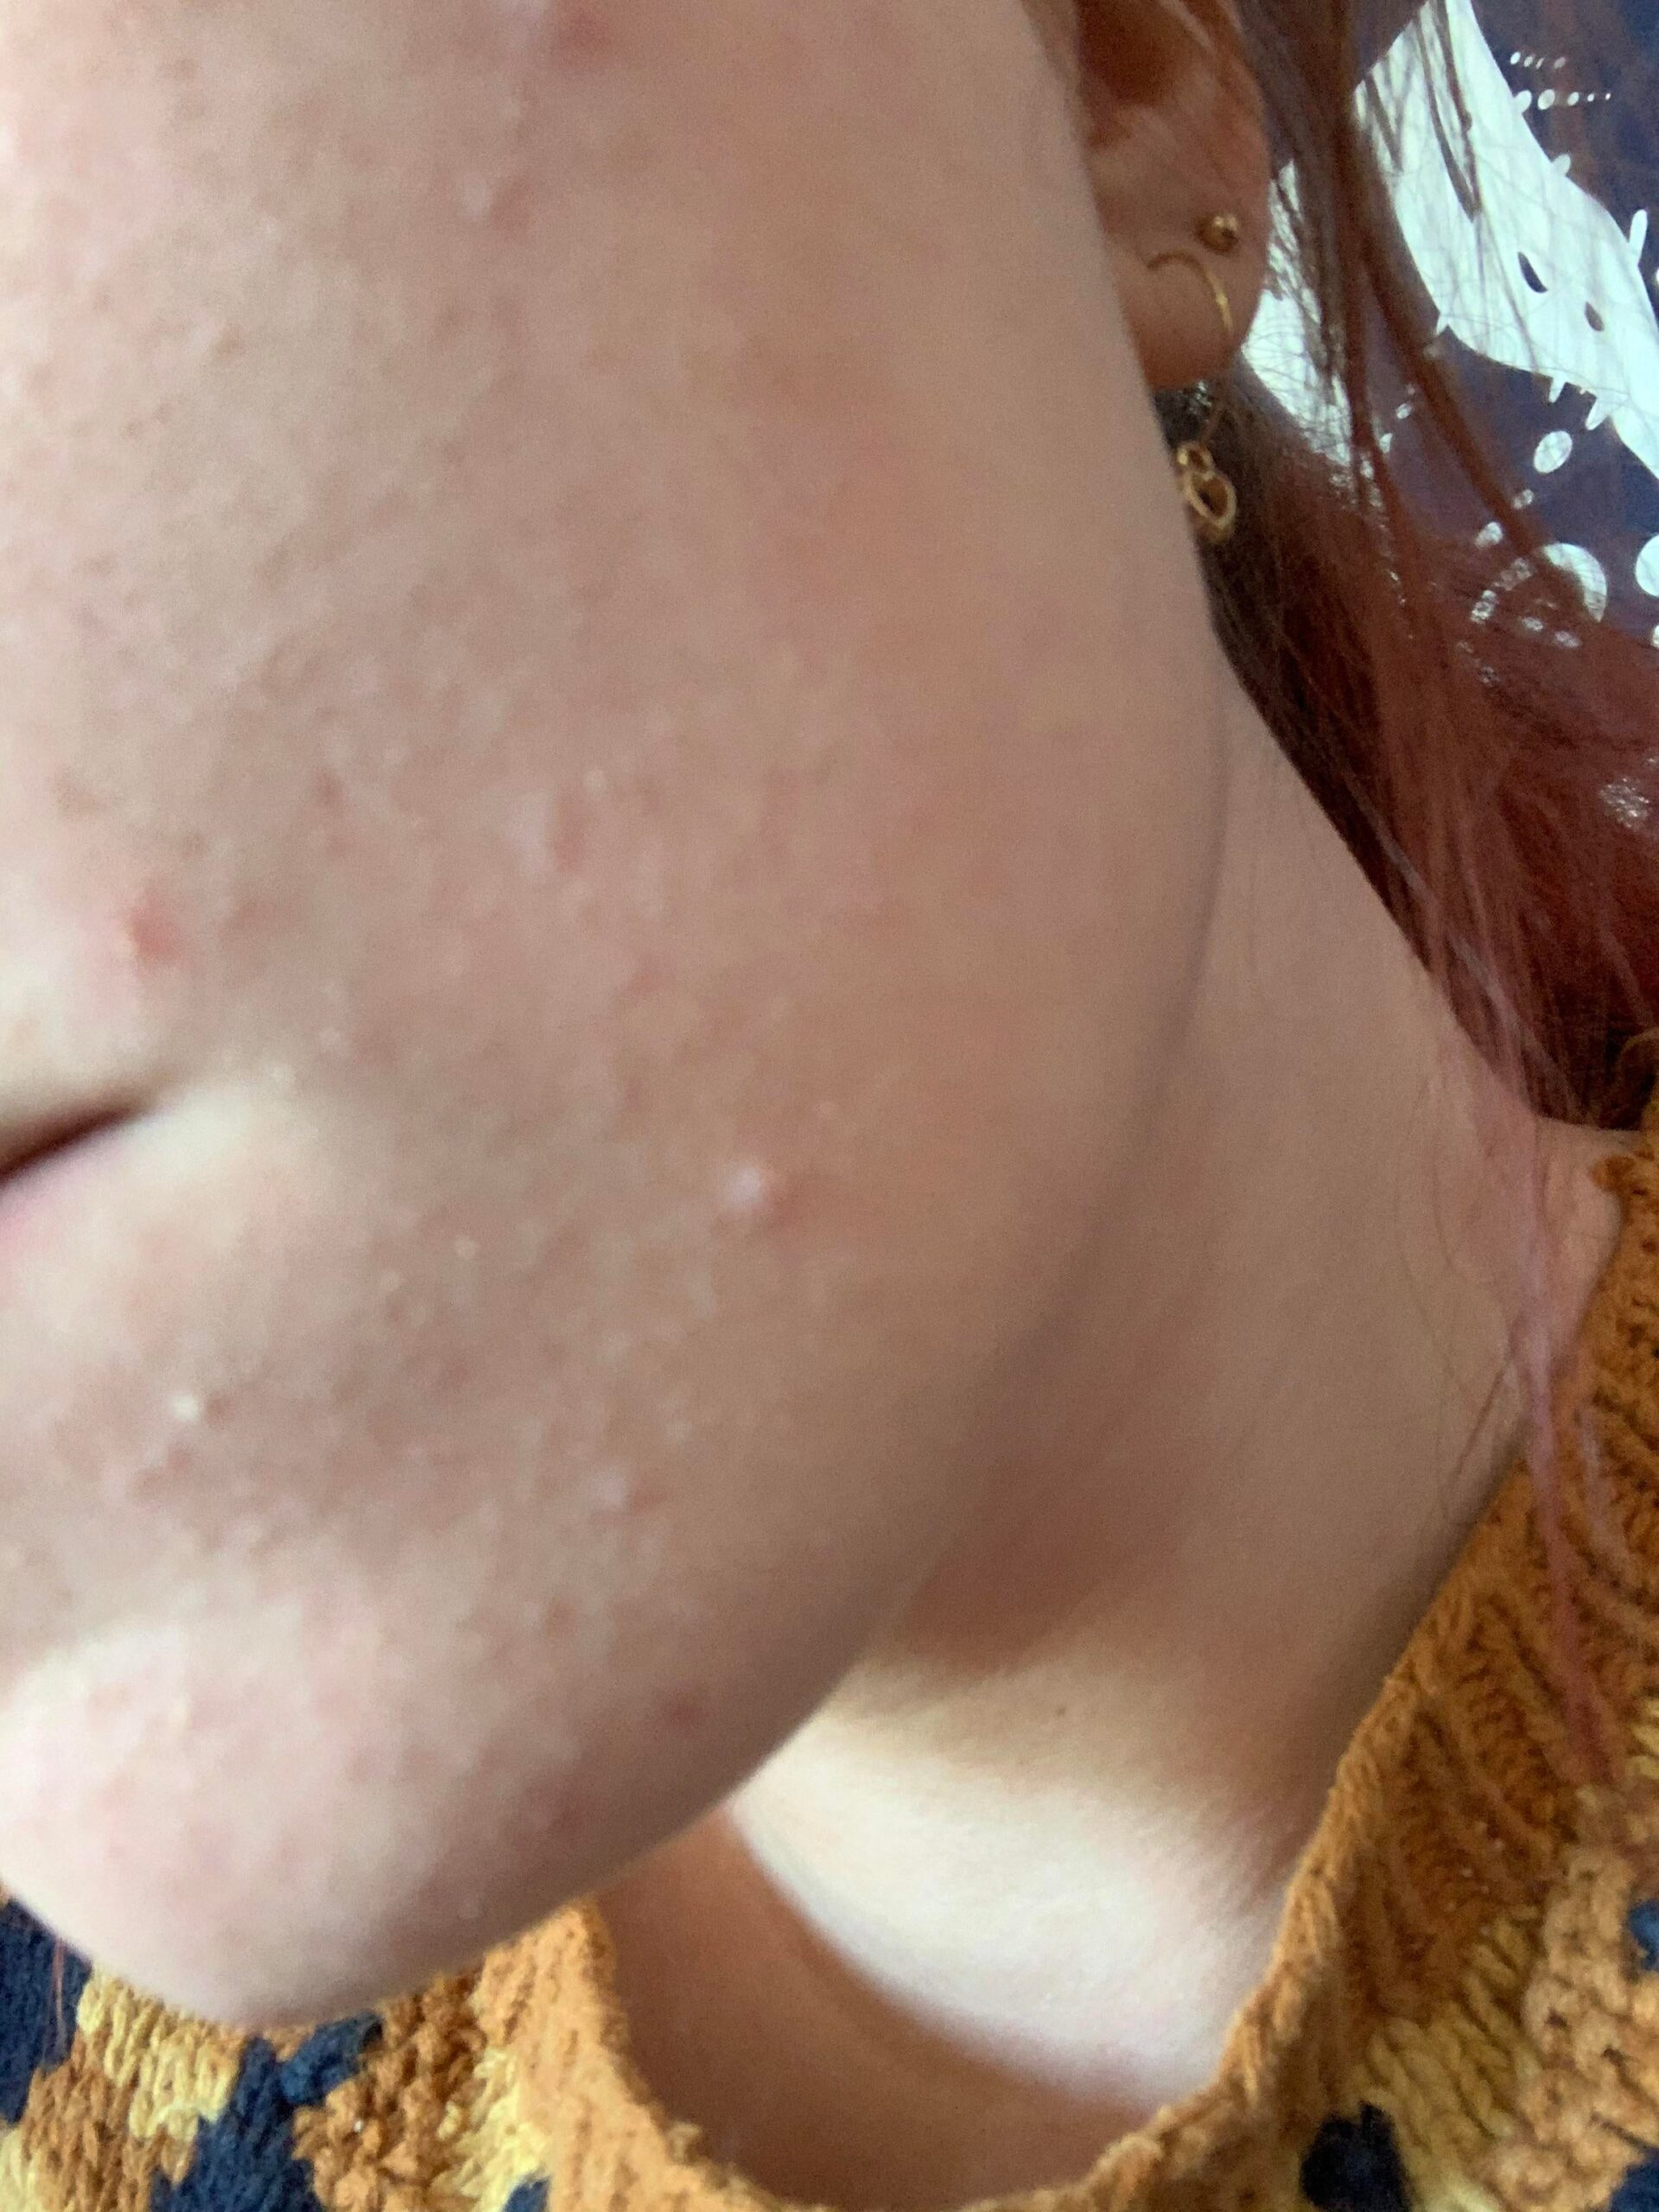 [acne] tiny bumps on my chin help! More details in comments